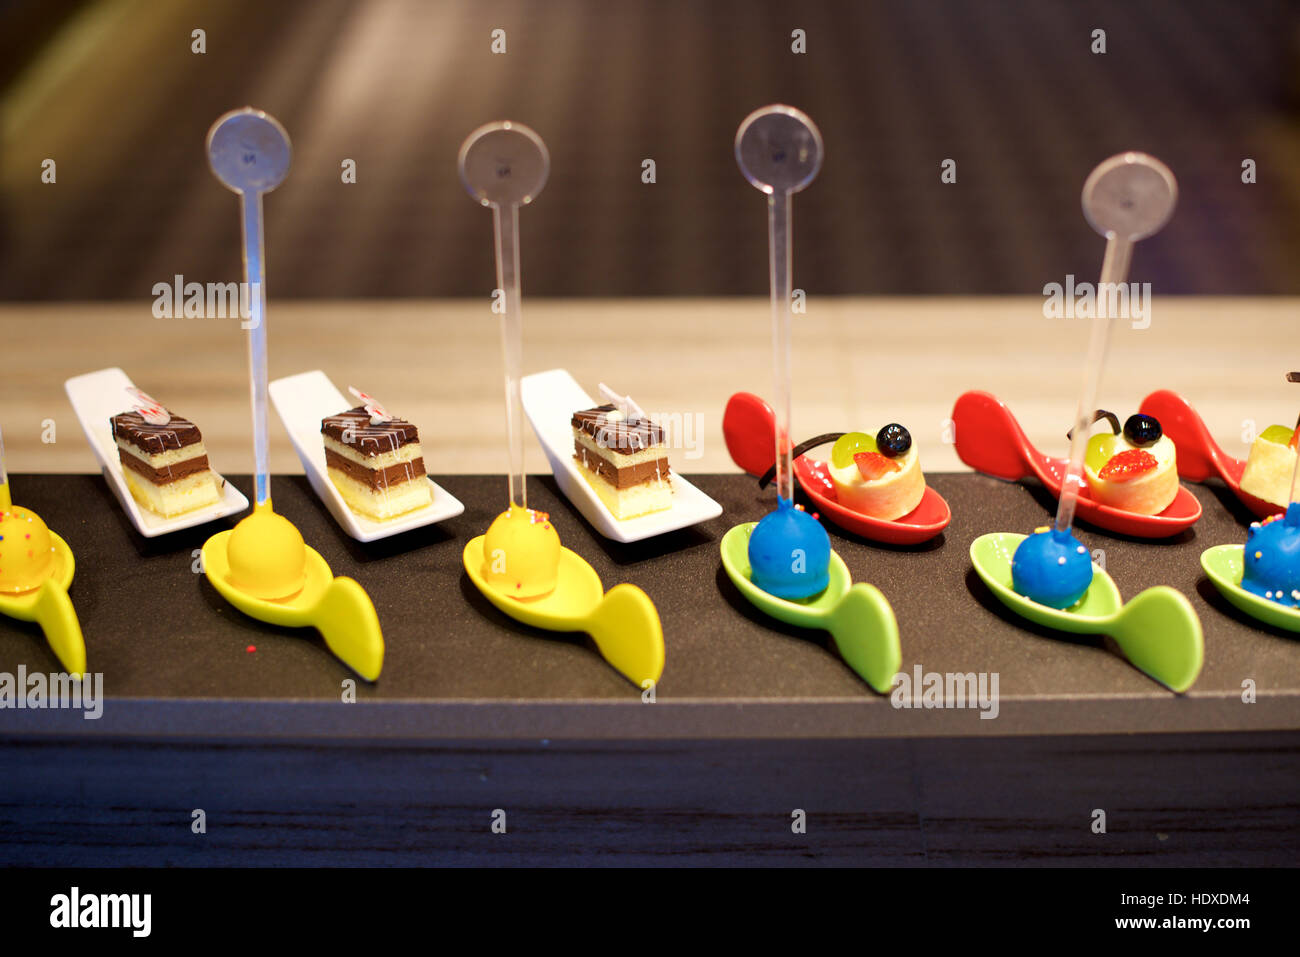 Sweet Dessert canapes sweets on restaurant table - Stock Image